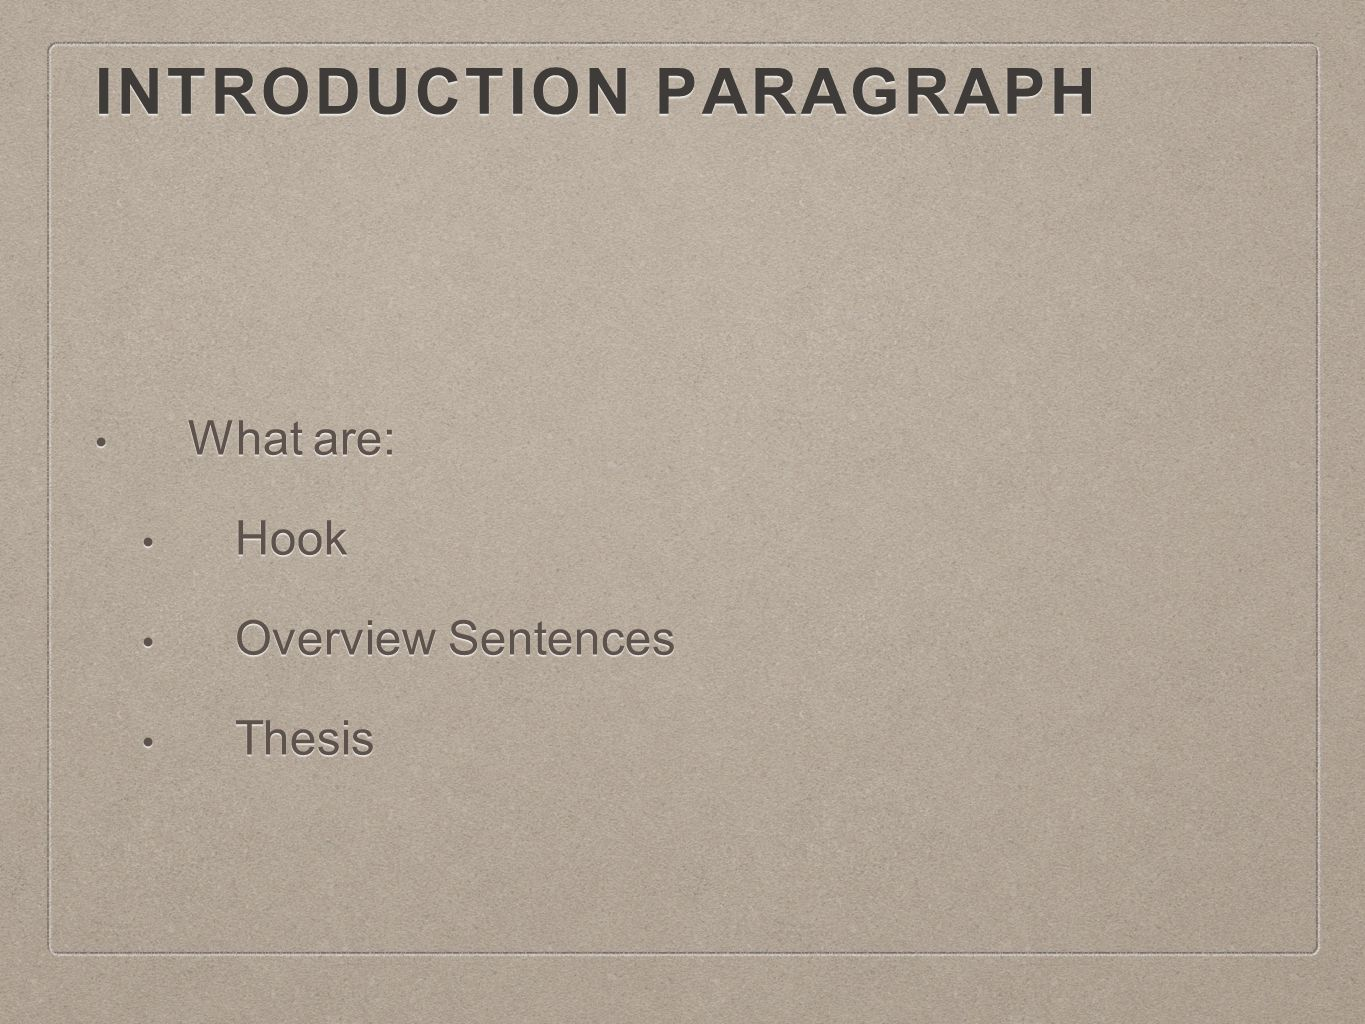 thesis theme body hook Thesis statements and topic sentences analytical research paper checklist  general grading criteria thesis statements a thesis statement defines the scope and purpose of the paper it.